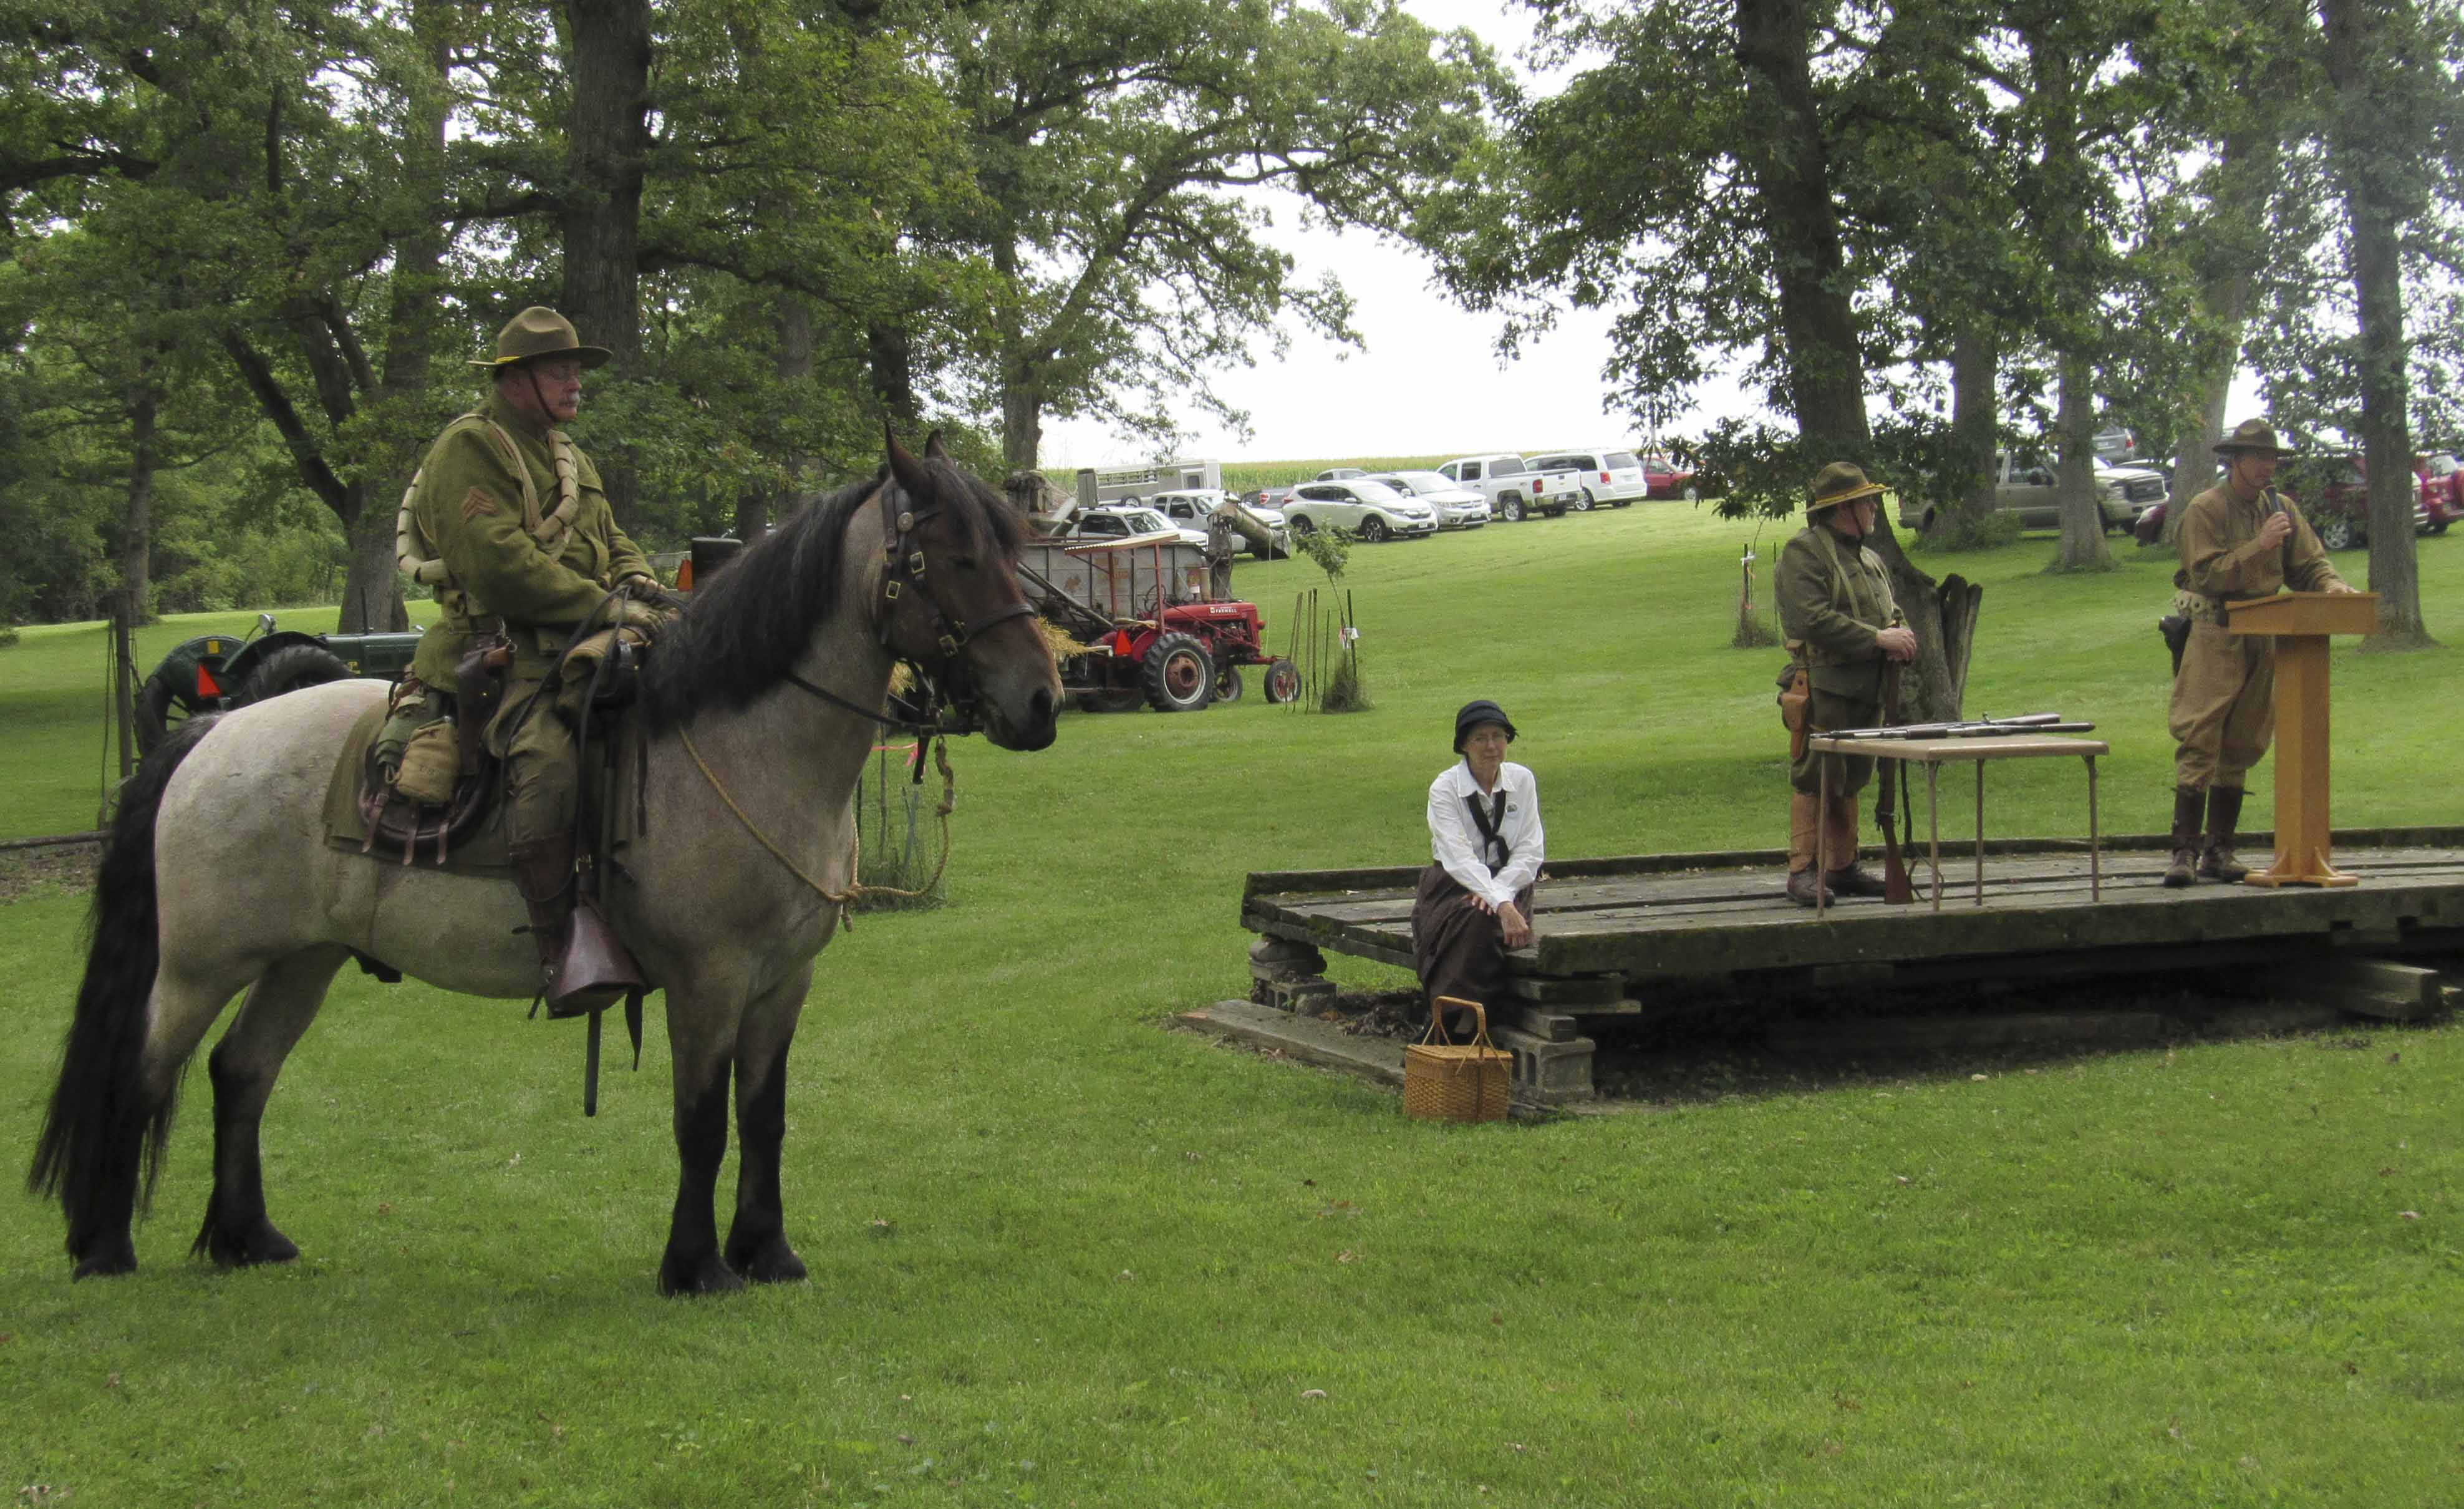 There were several WWI Cavalry Re-enactors on hand at the Edinburgh Festival to talk about the weaponry and equipment used during the war. From left are Ward Brown (on his horse Buddy), Gaile Brown, Steven Platteter, and Brian Pittman. Pittman is the grandson of former Monticello resident Carl Seehusen.